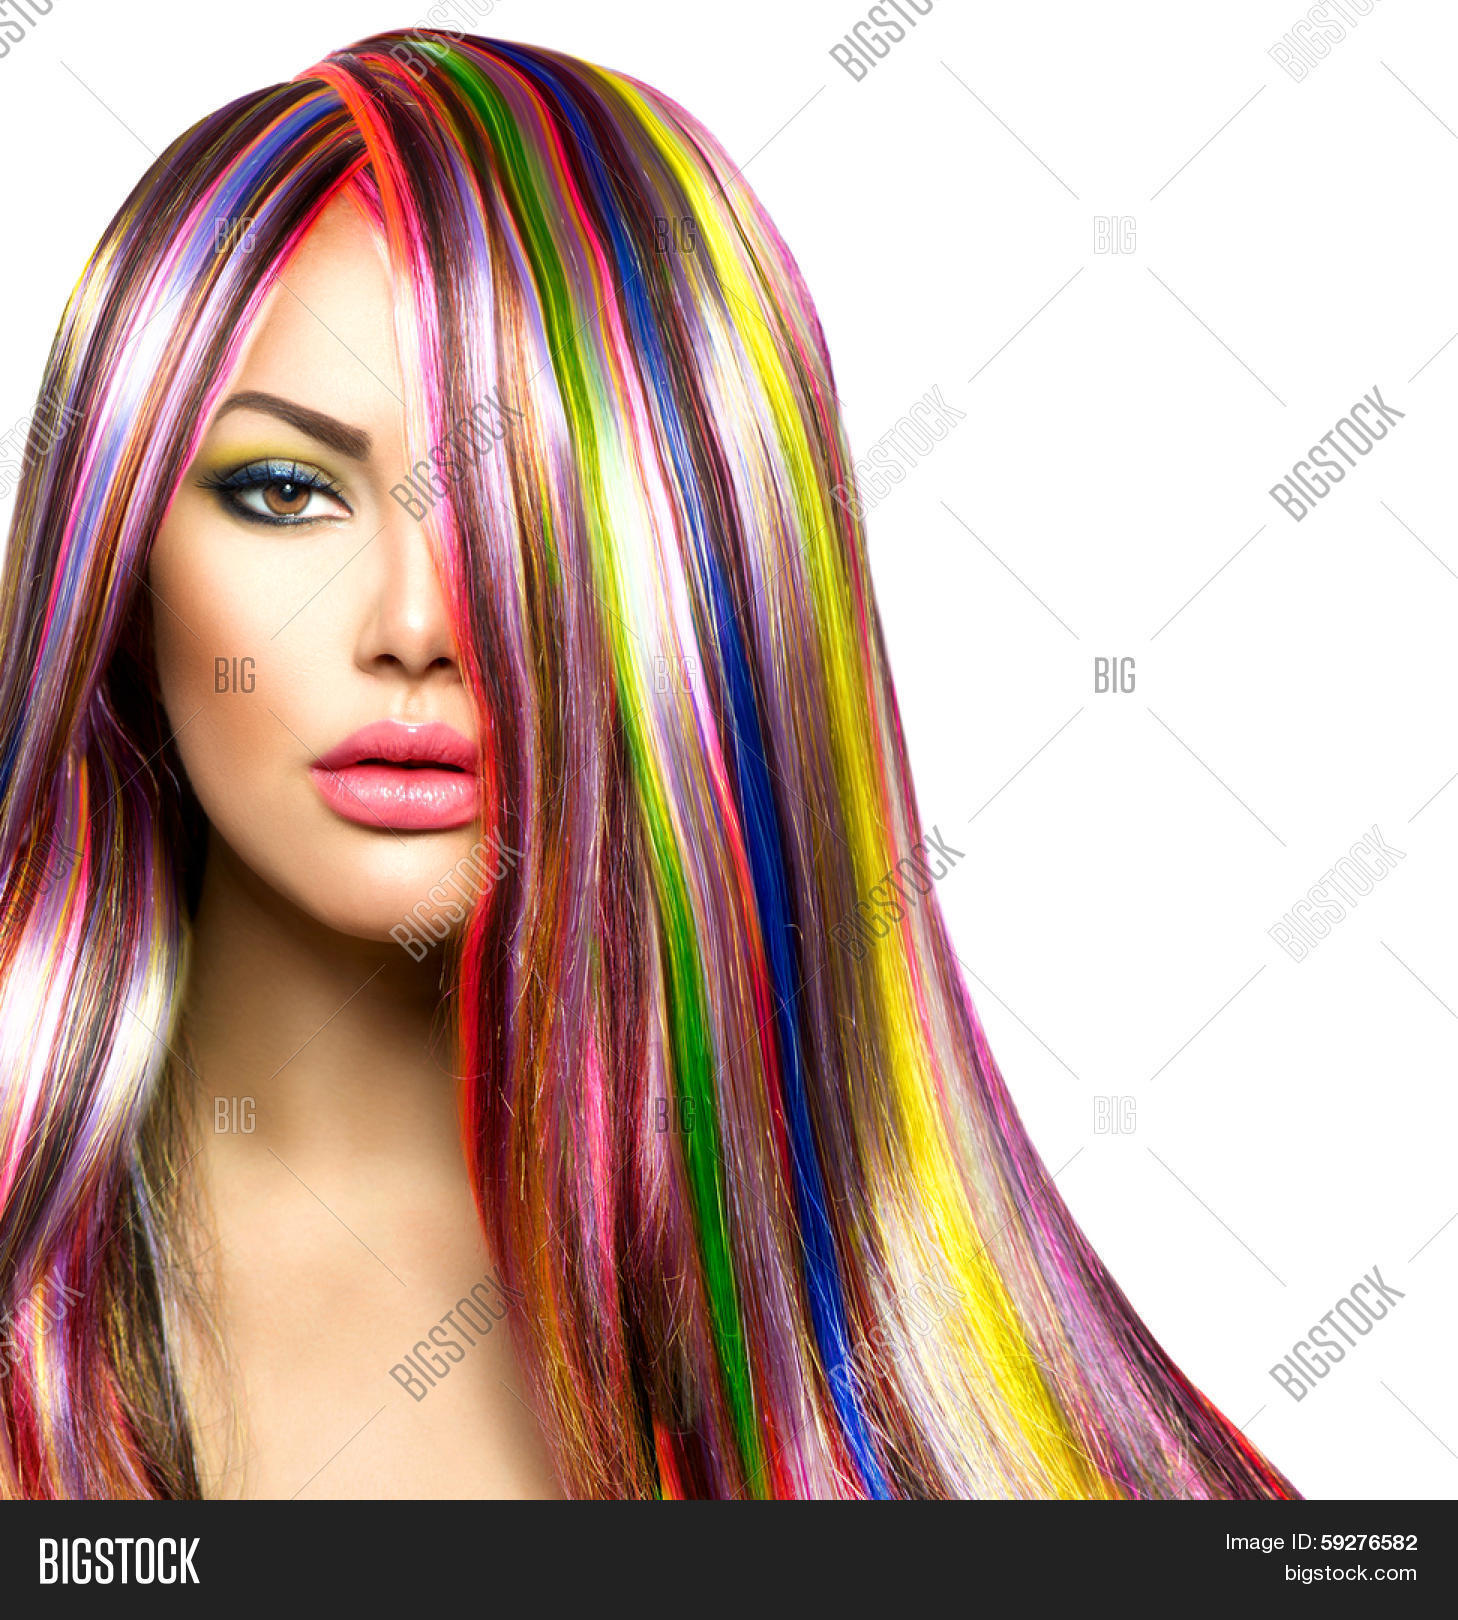 Colorful Hair Makeup Image Photo Free Trial Bigstock